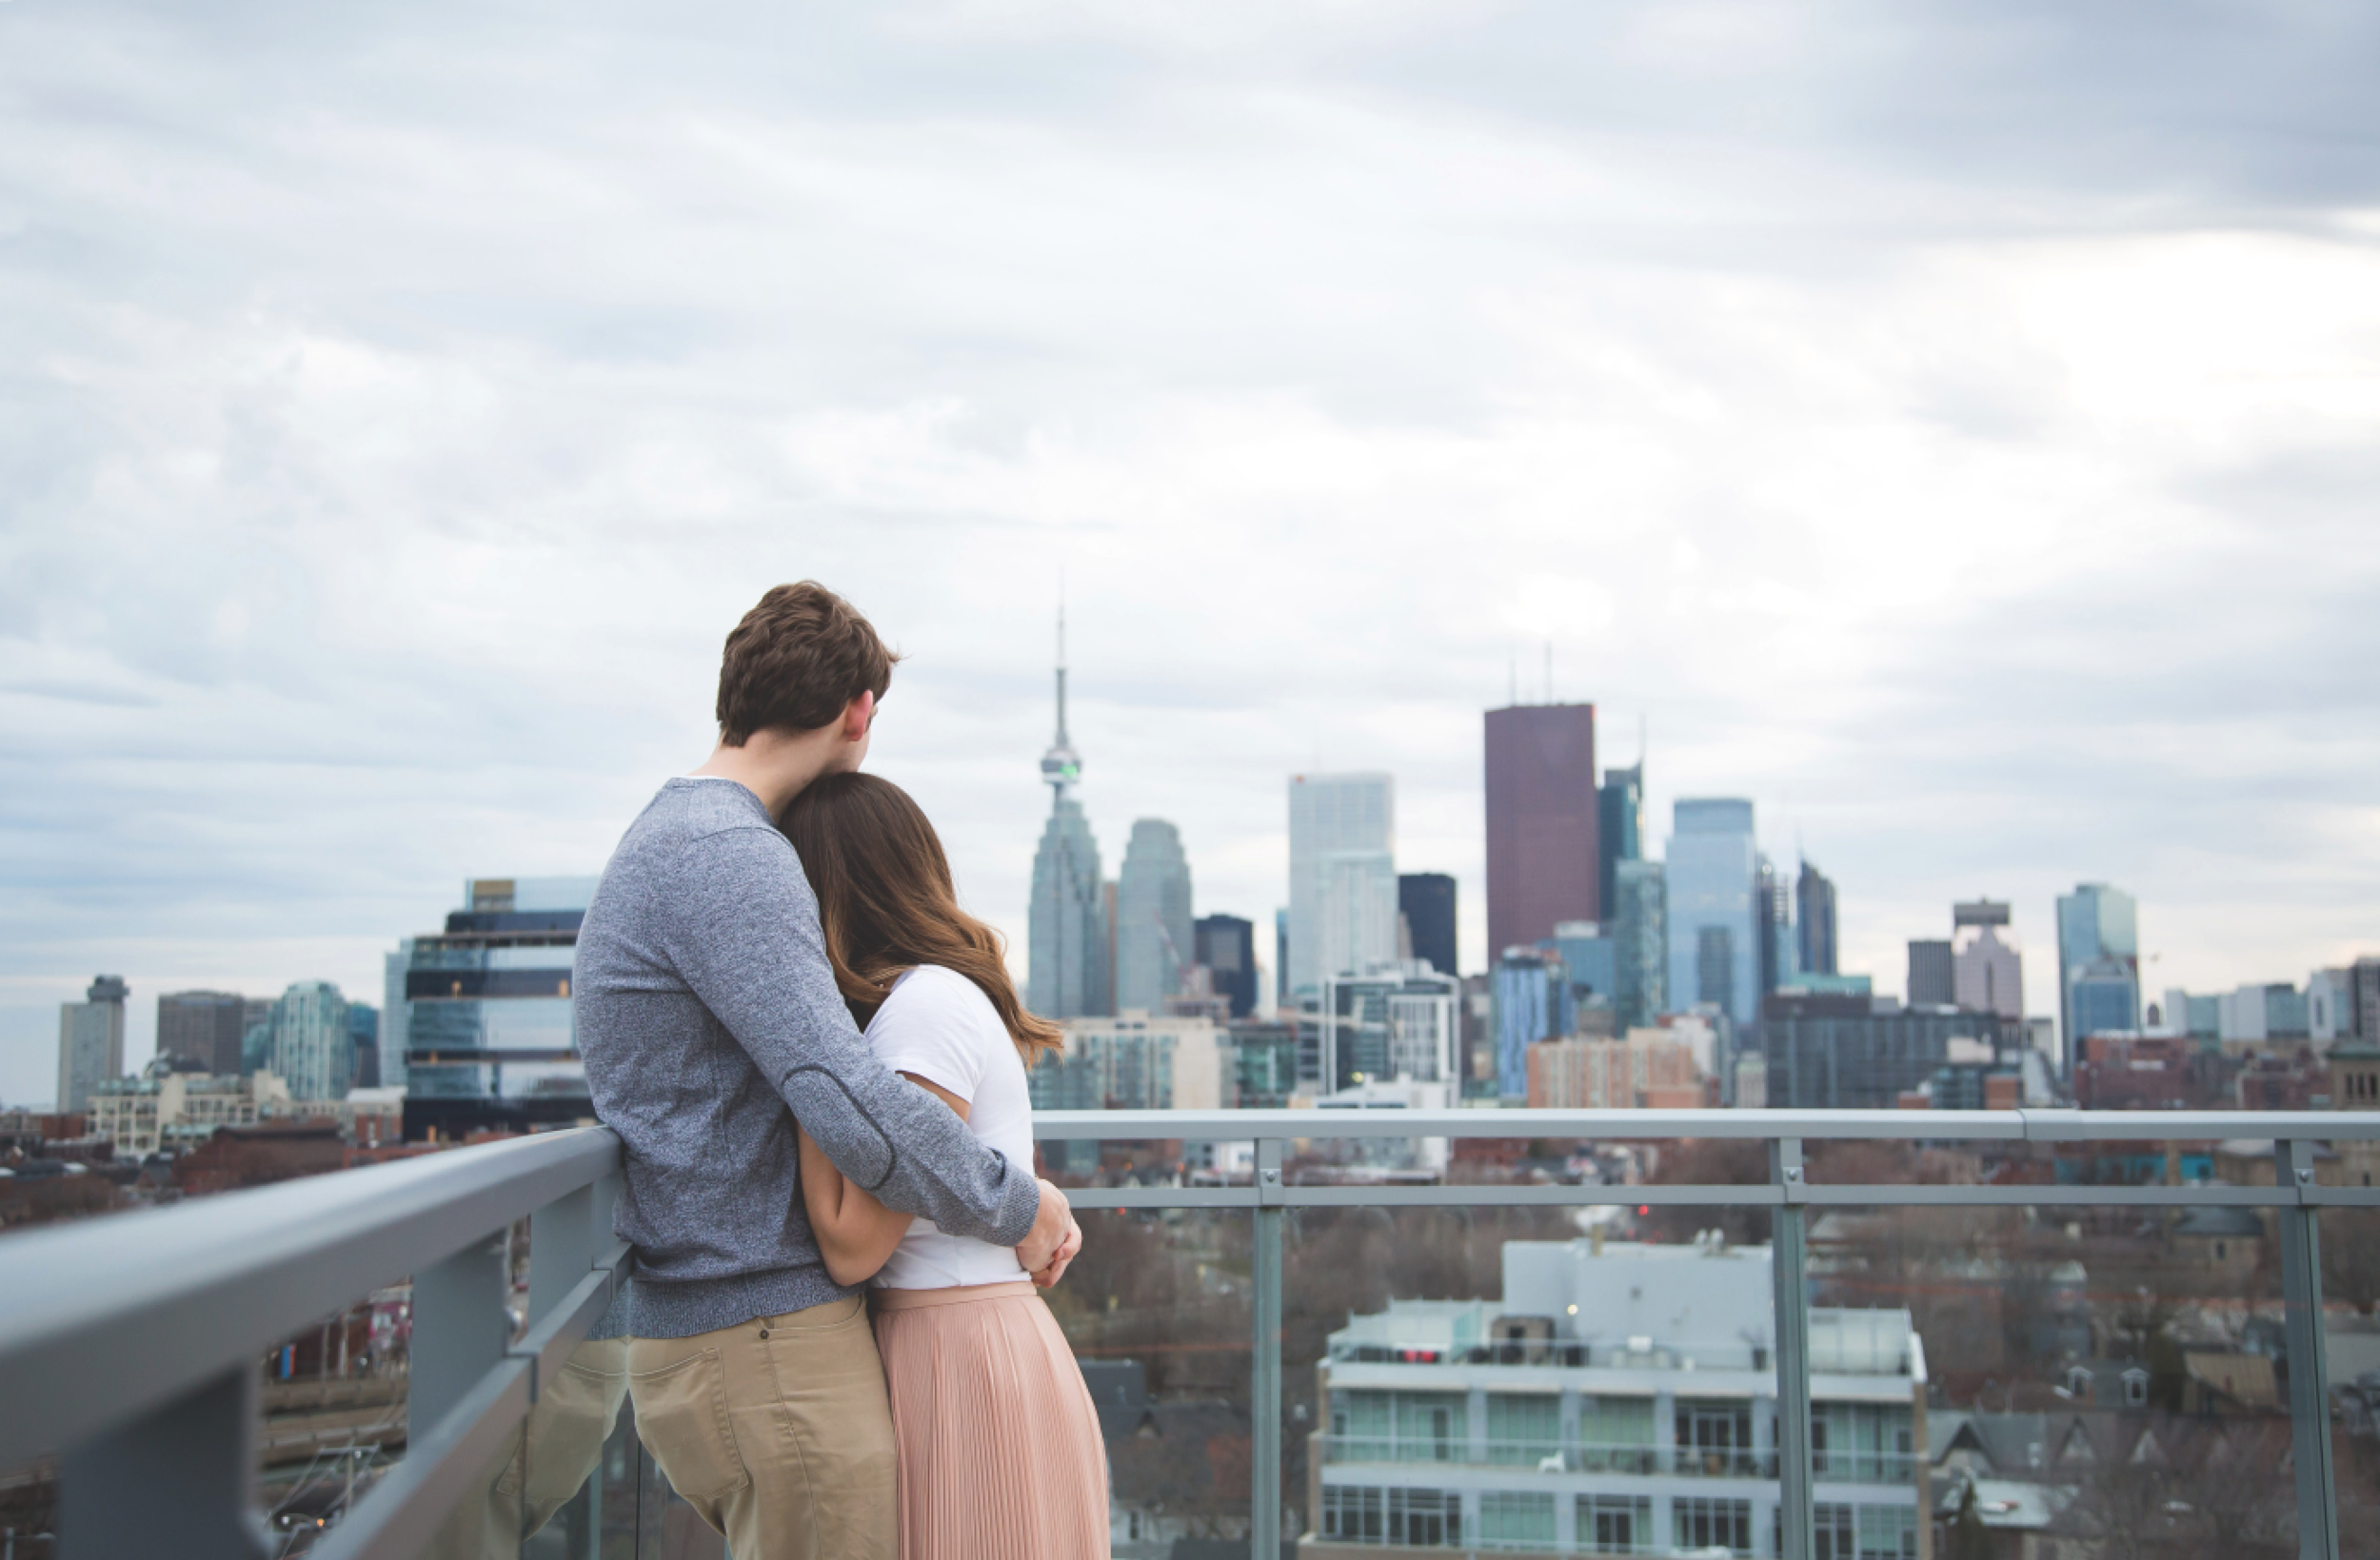 Engagement-Photos-Toronto-Corktown-Photographer-Wedding-Hamilton-GTA-Niagara-Oakville-Modern-Moments-by-Lauren-Engaged-Image-Photo14.png